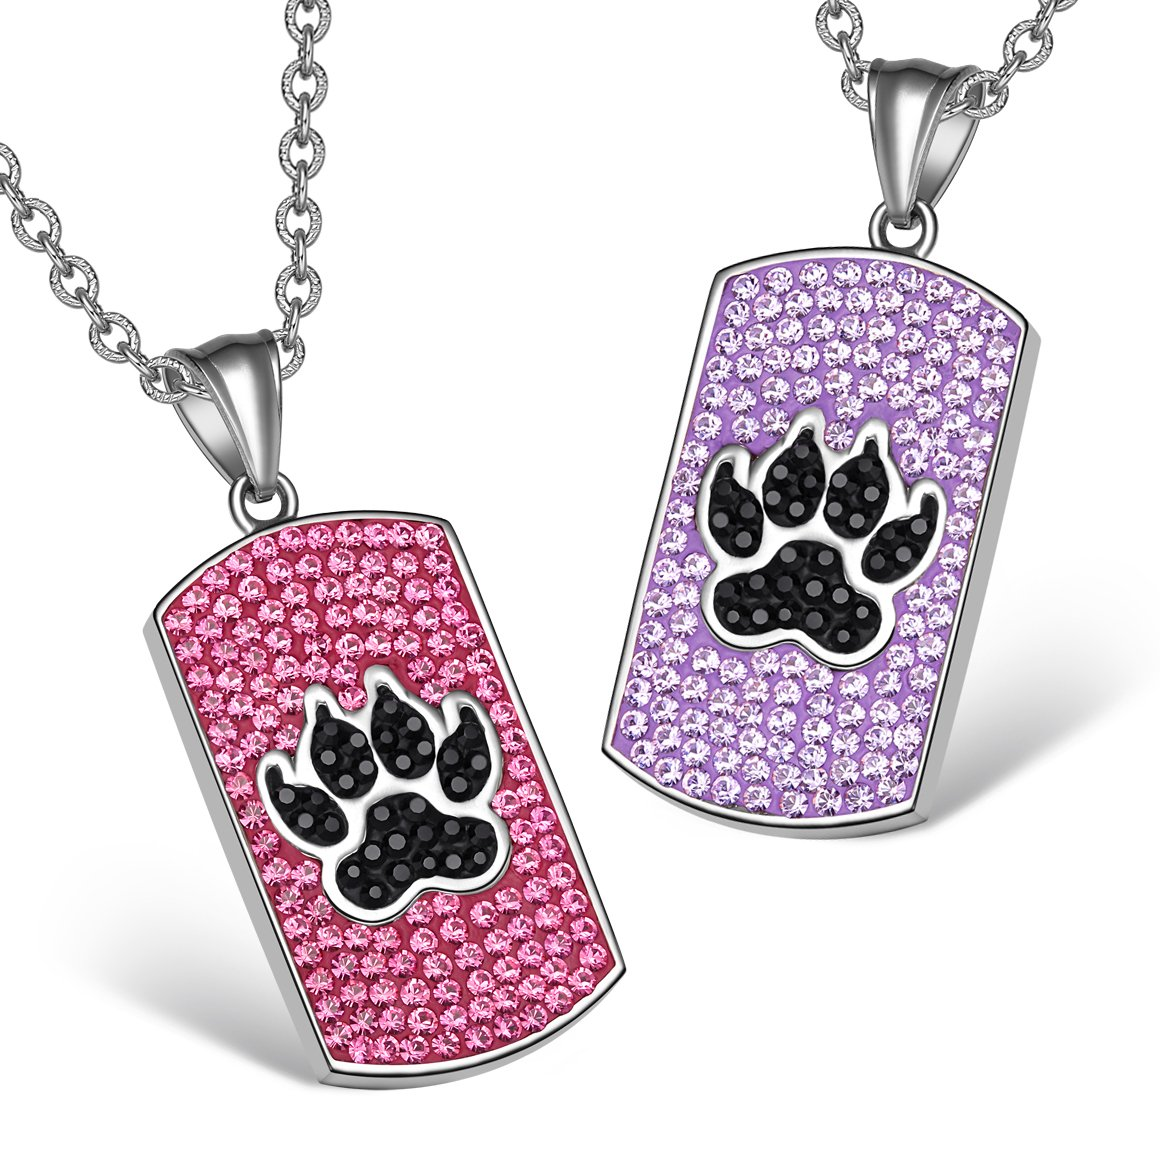 Wolf Paw Austrian Crystal Love Couples or Best Friends Tag Fuscia Pink Purple Jet Black Necklaces